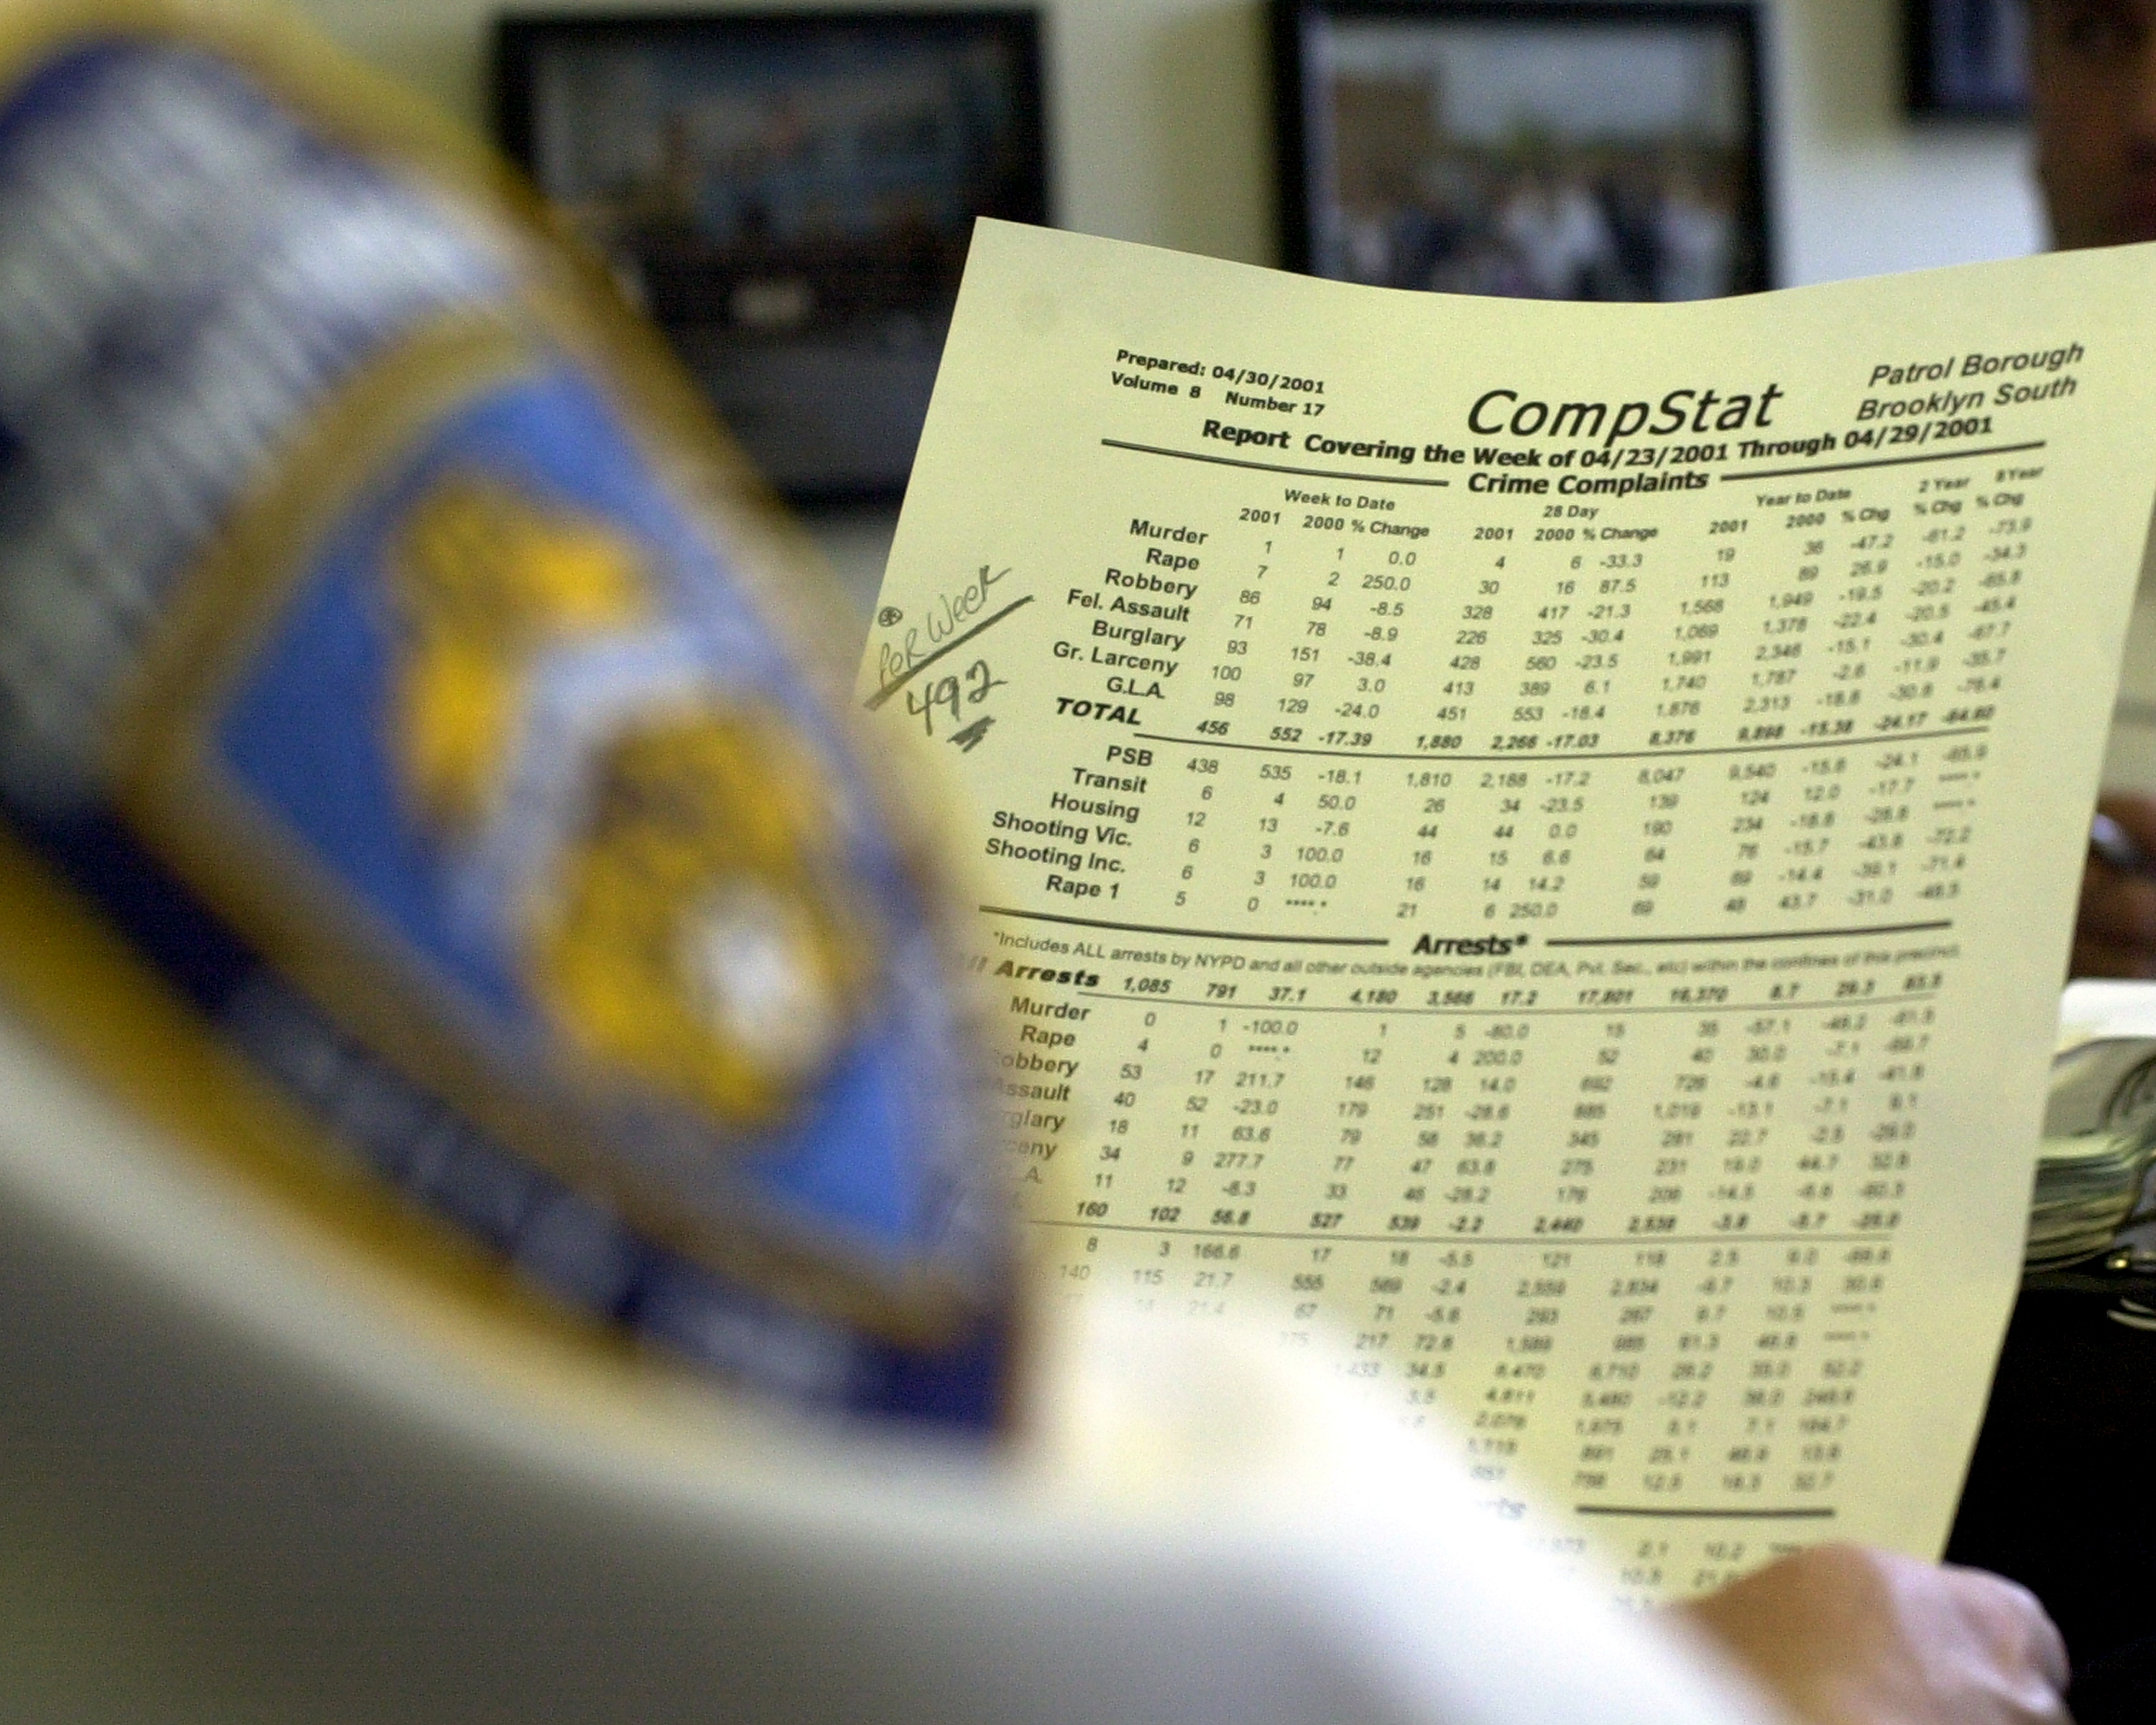 A police officer reviews CompStat data.